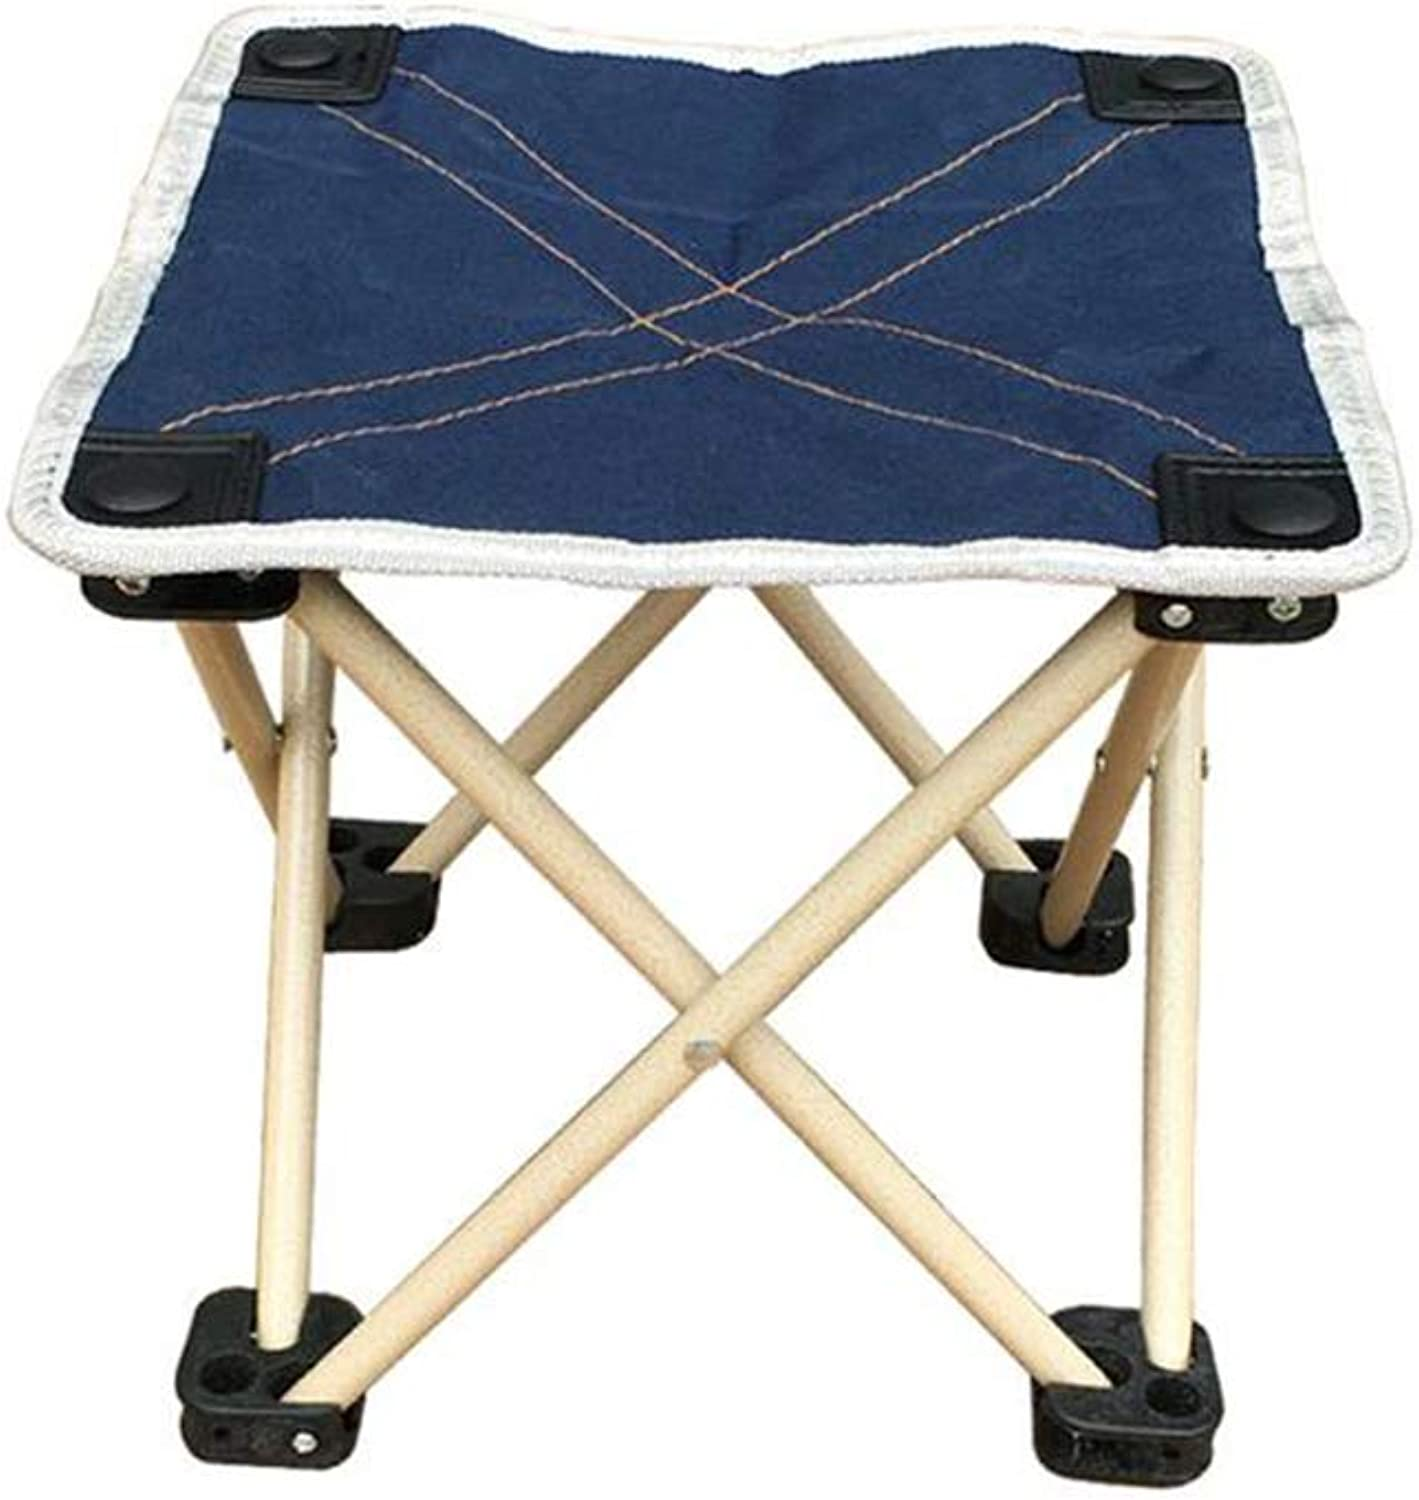 CJC Stool Folding Seat Rest Portable Tripod Camping Sports Lightweight Mountaineering (color   Dark bluee)